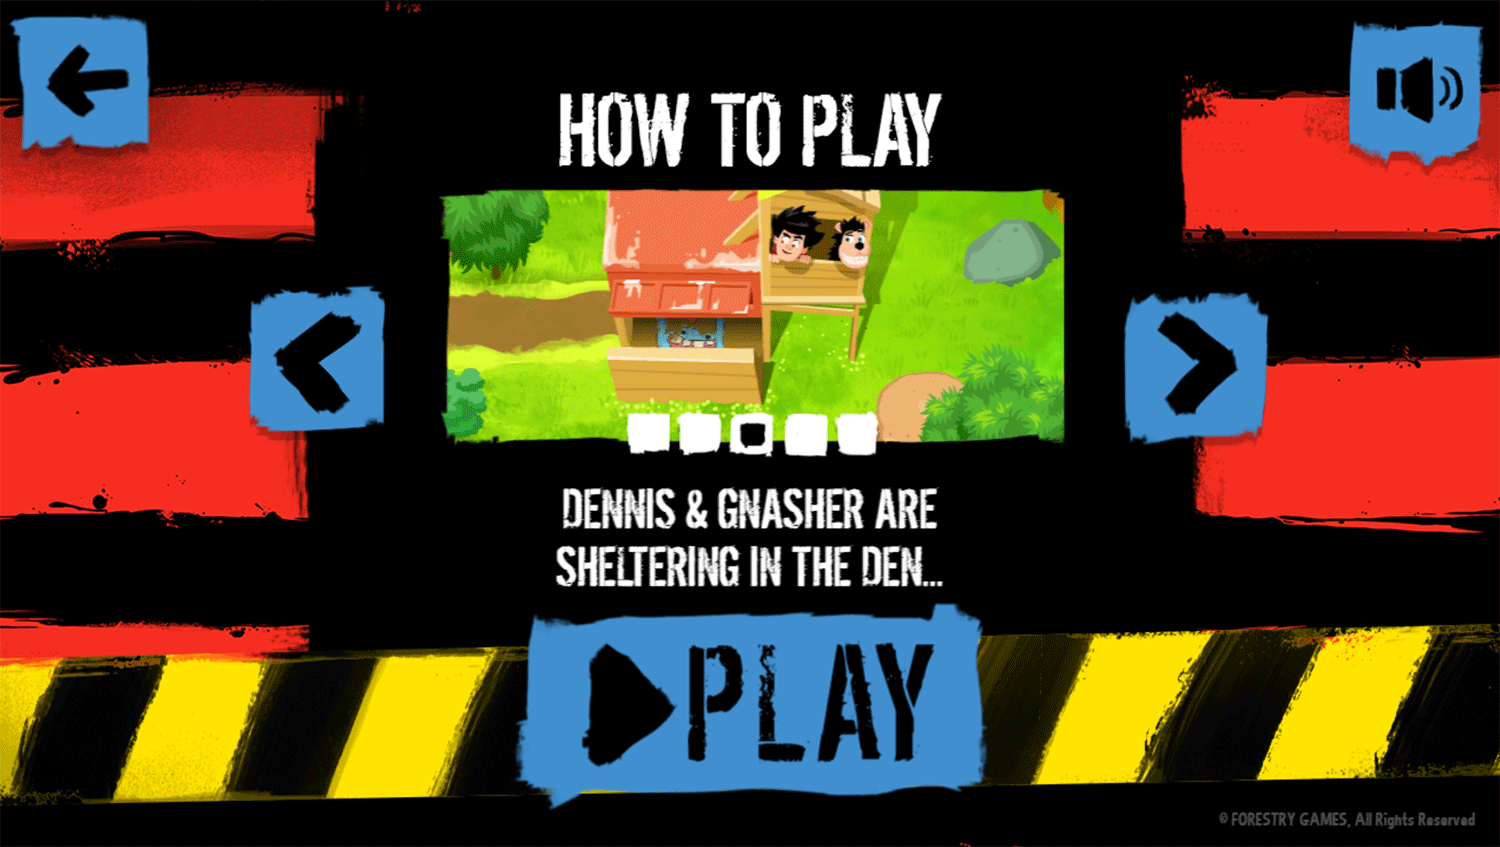 Dennis & Gnasher Defend the Den Game How To Play Screenshot.